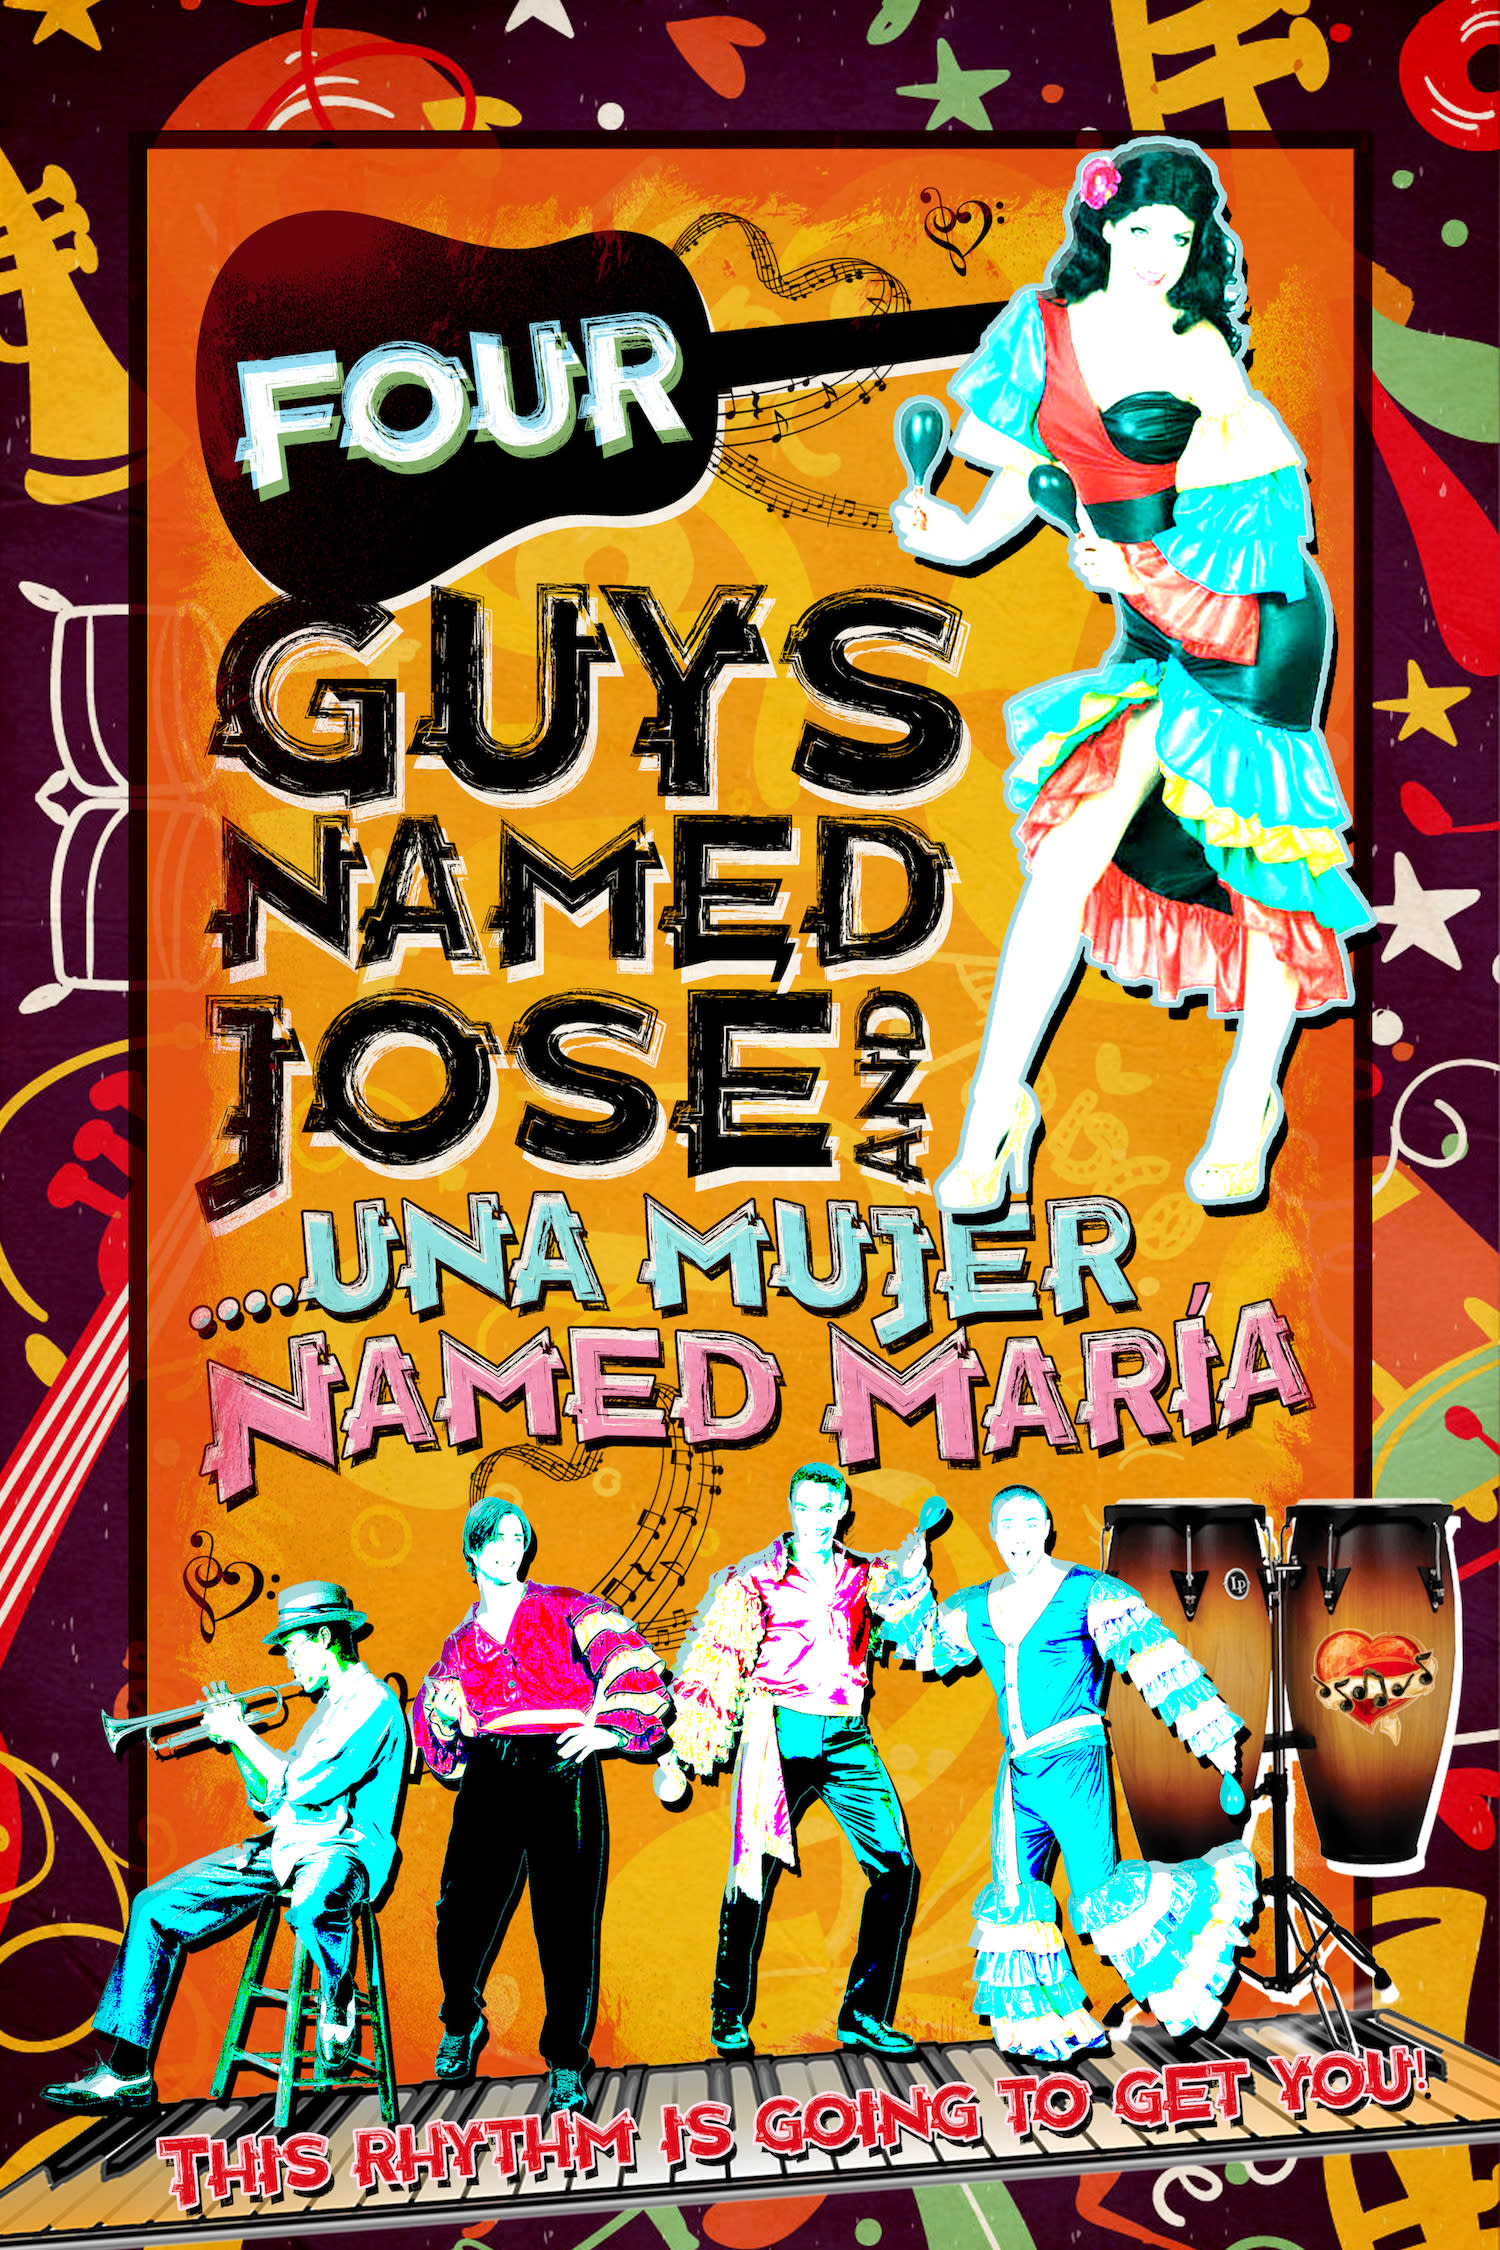 Four Guys Named Jose and Una Mujer Named Maria